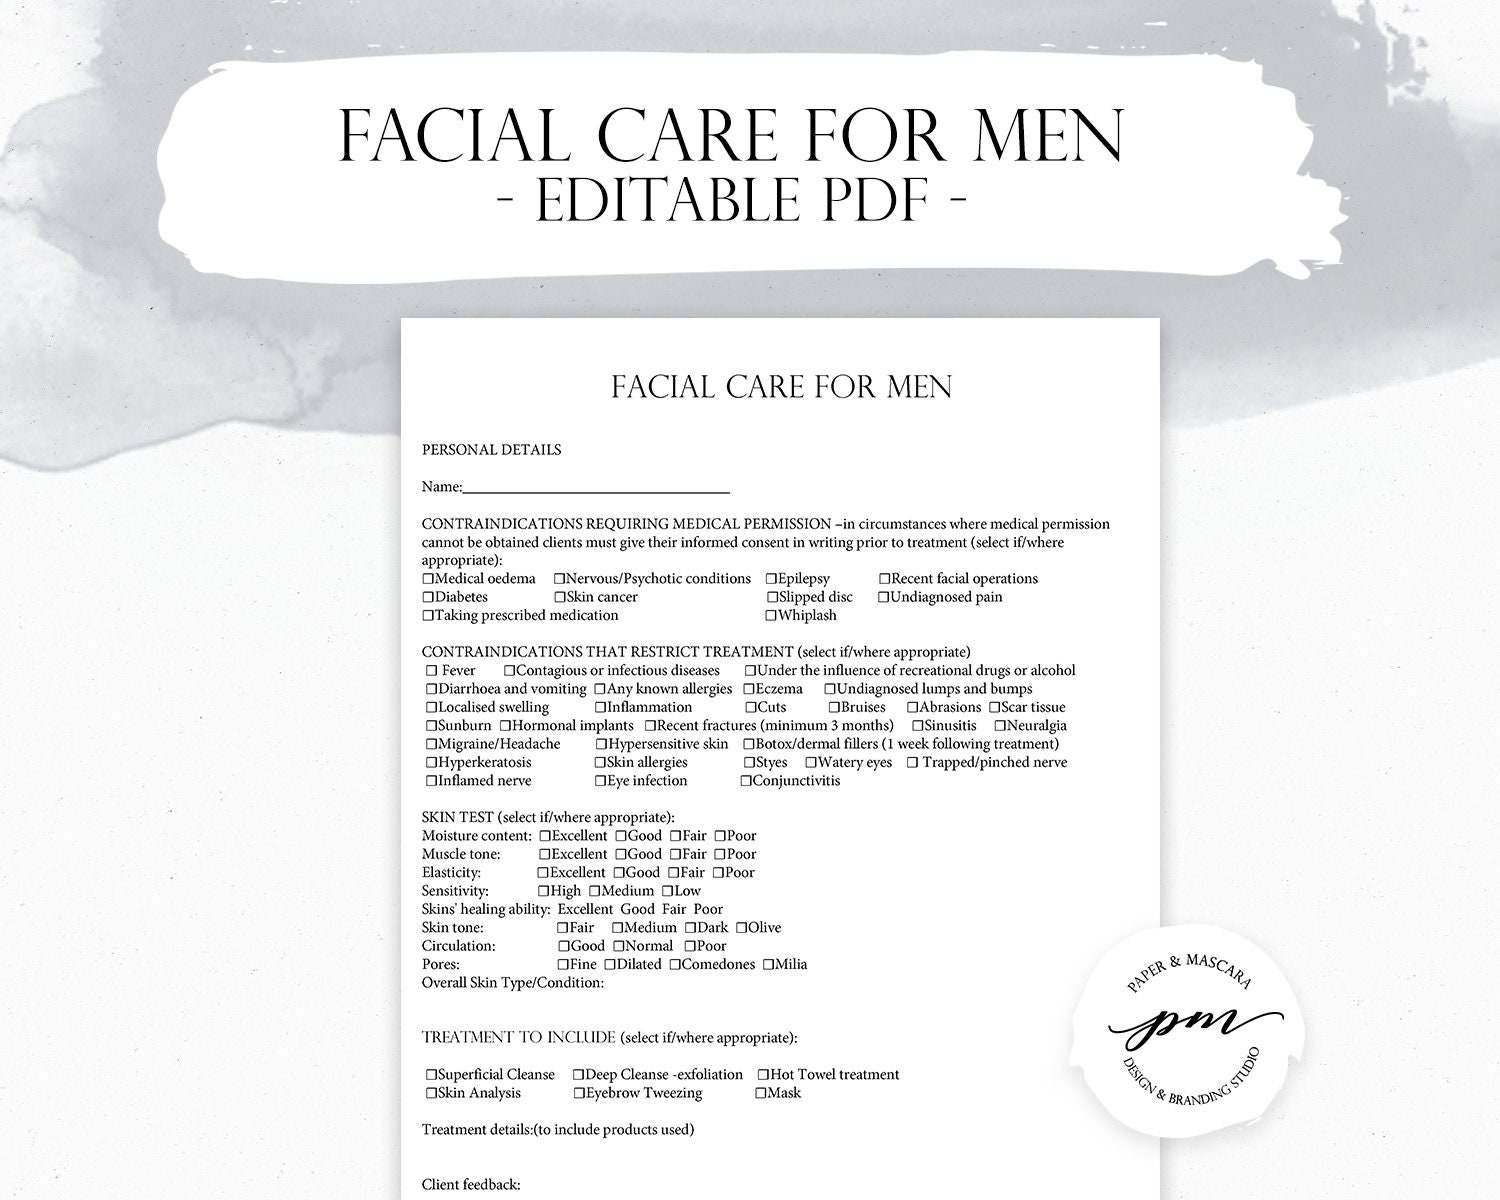 Facial Care For Men - Salon Services Form, Editable Facial Treatment Form,  Esthetician Forms